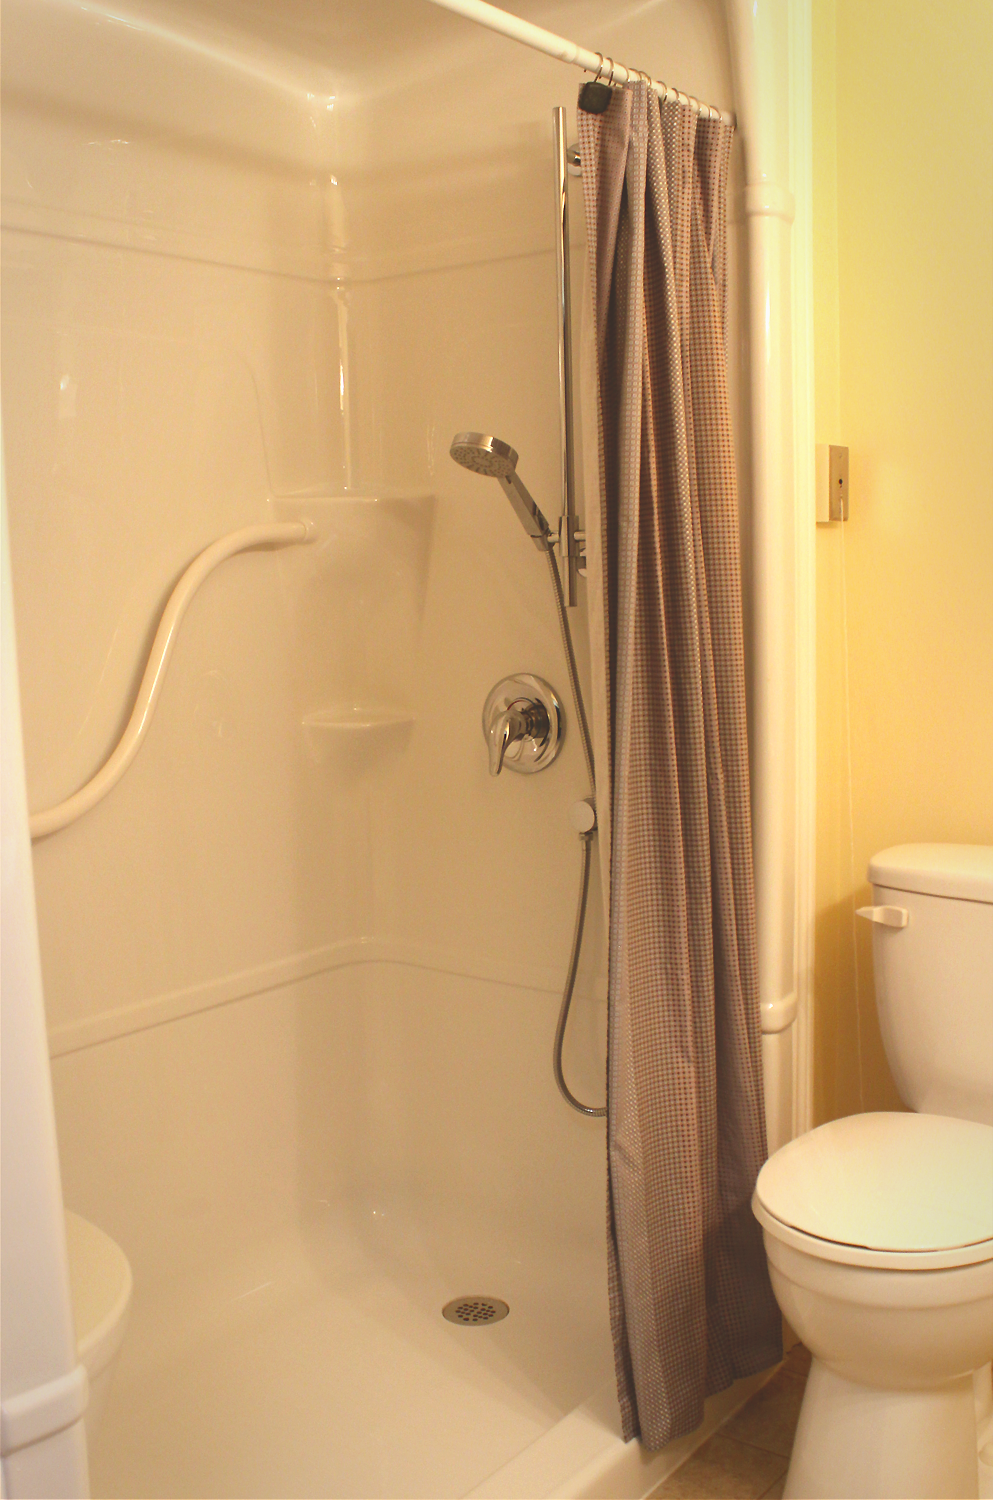 Birchmere Bathroom Shower. Click to view larger image.